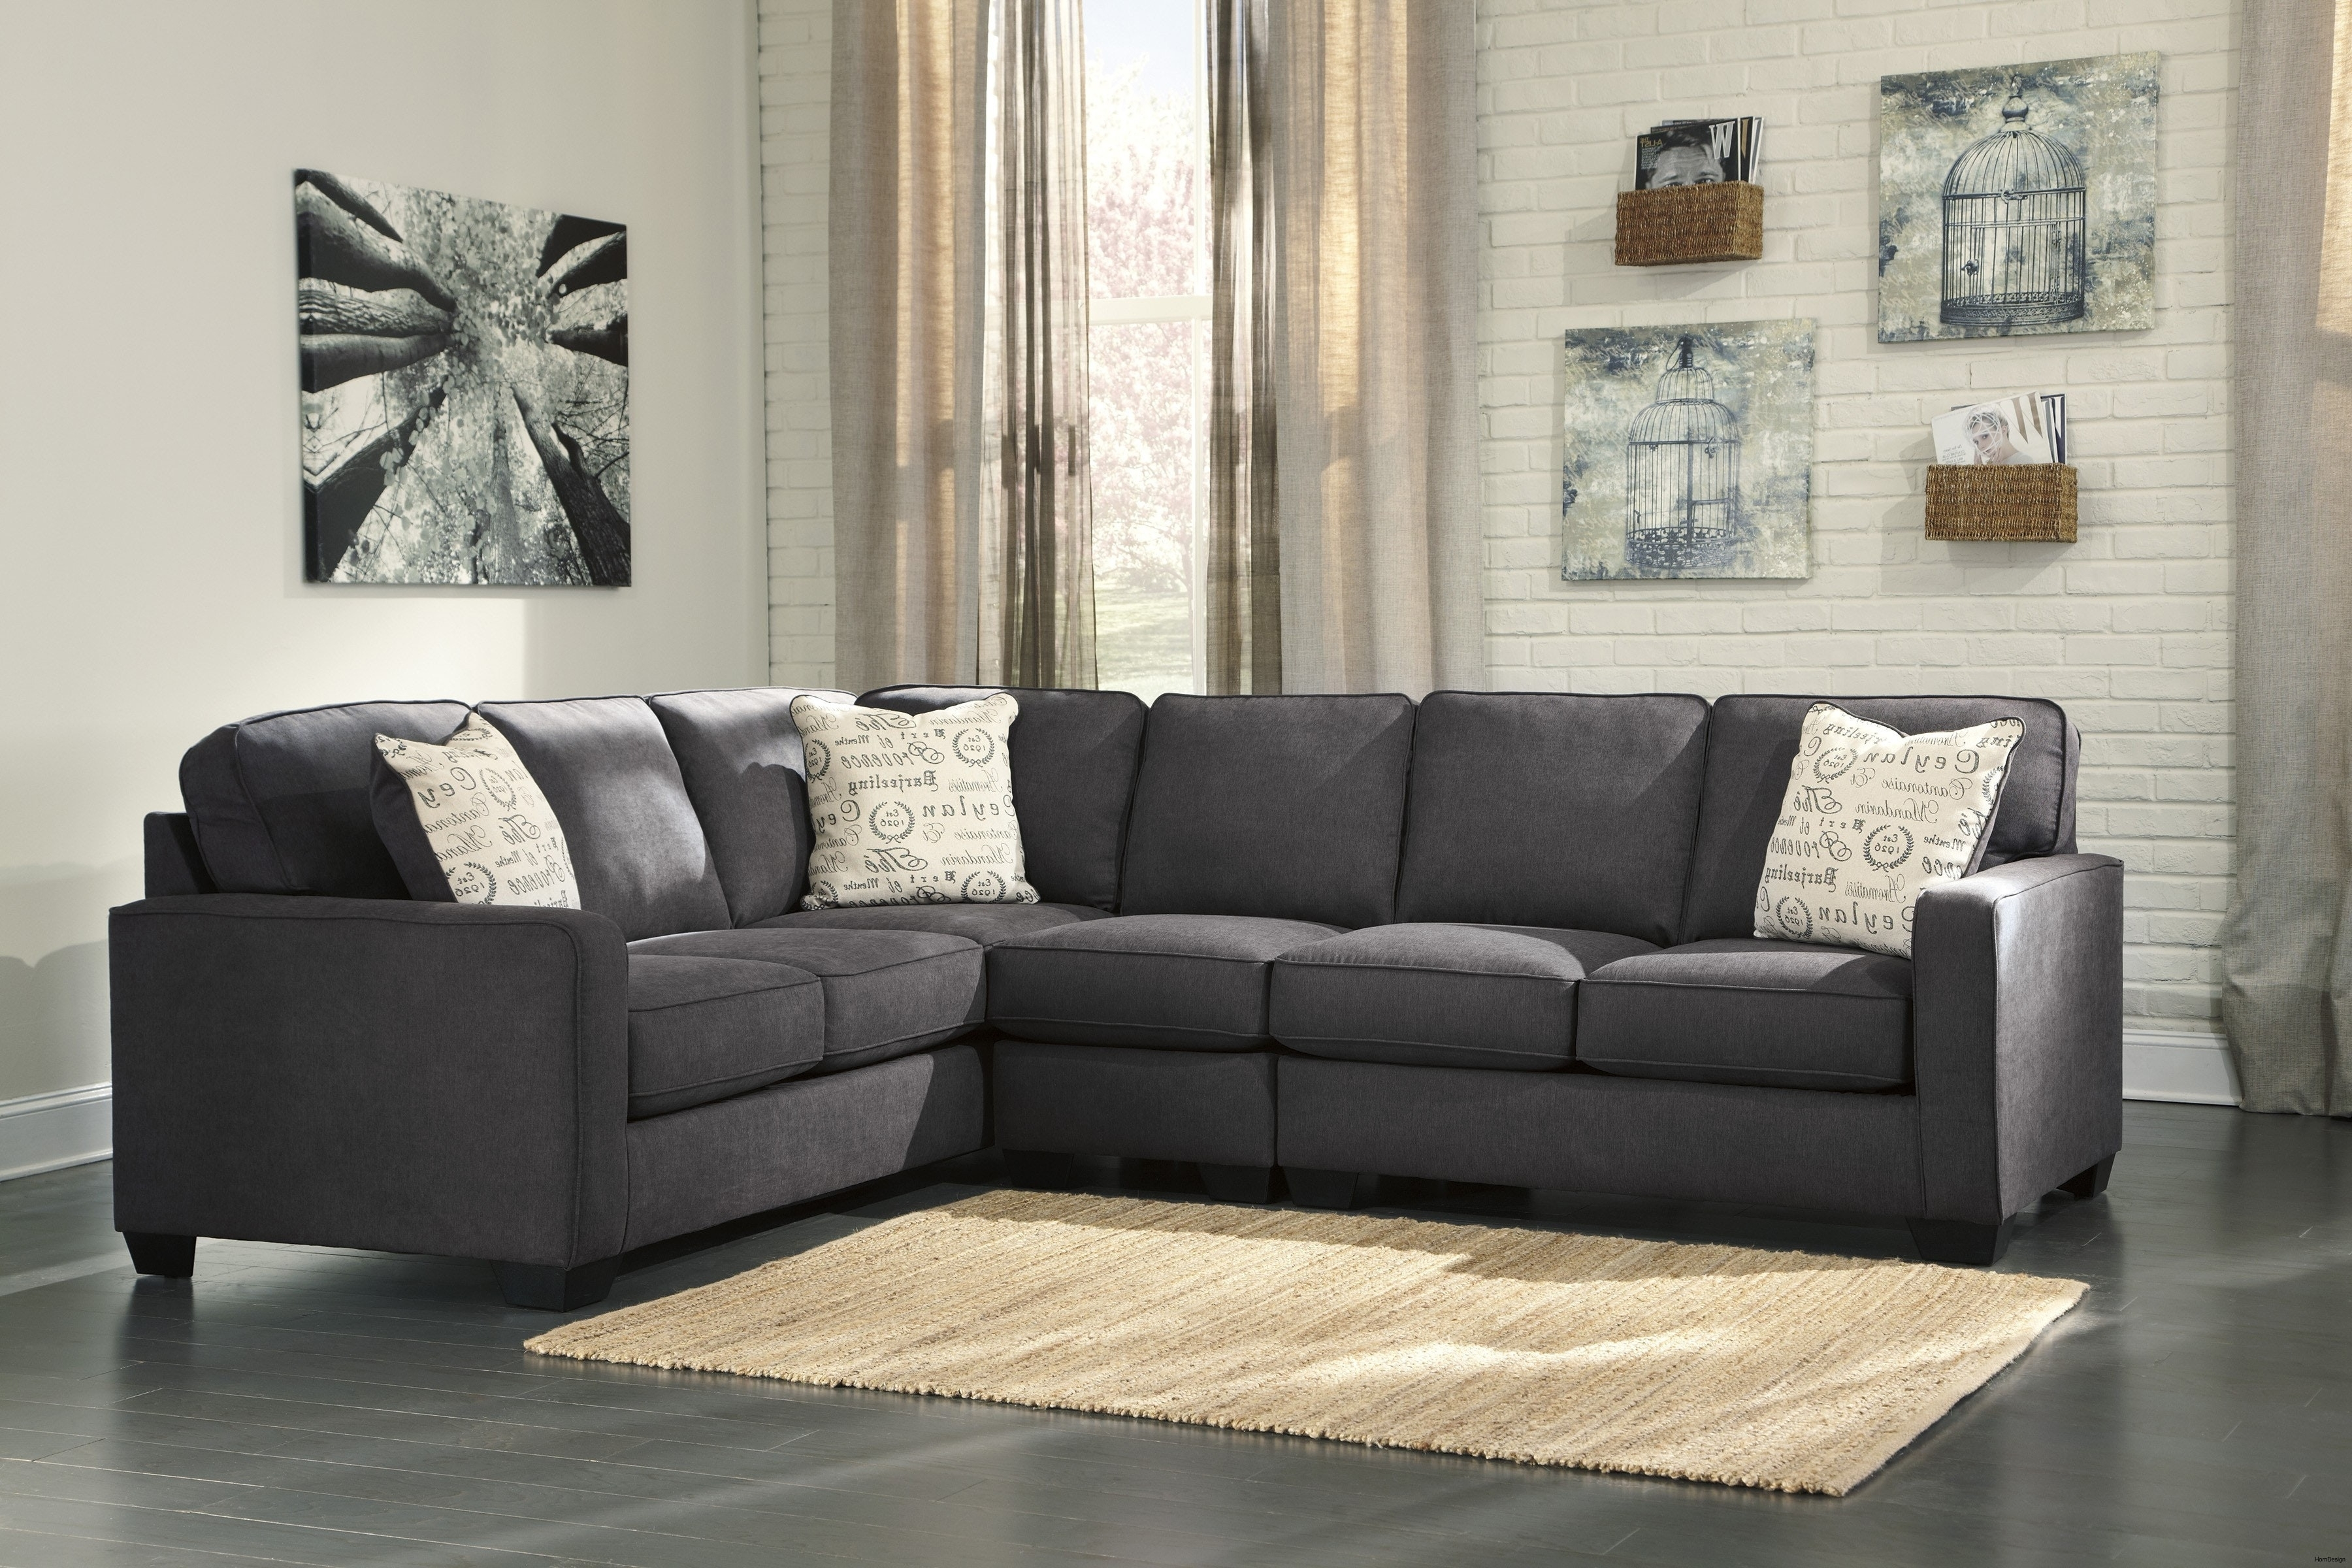 3 Piece Sectional Sofa With Chaise Reviews | Baci Living Room pertaining to Malbry Point 3 Piece Sectionals With Raf Chaise